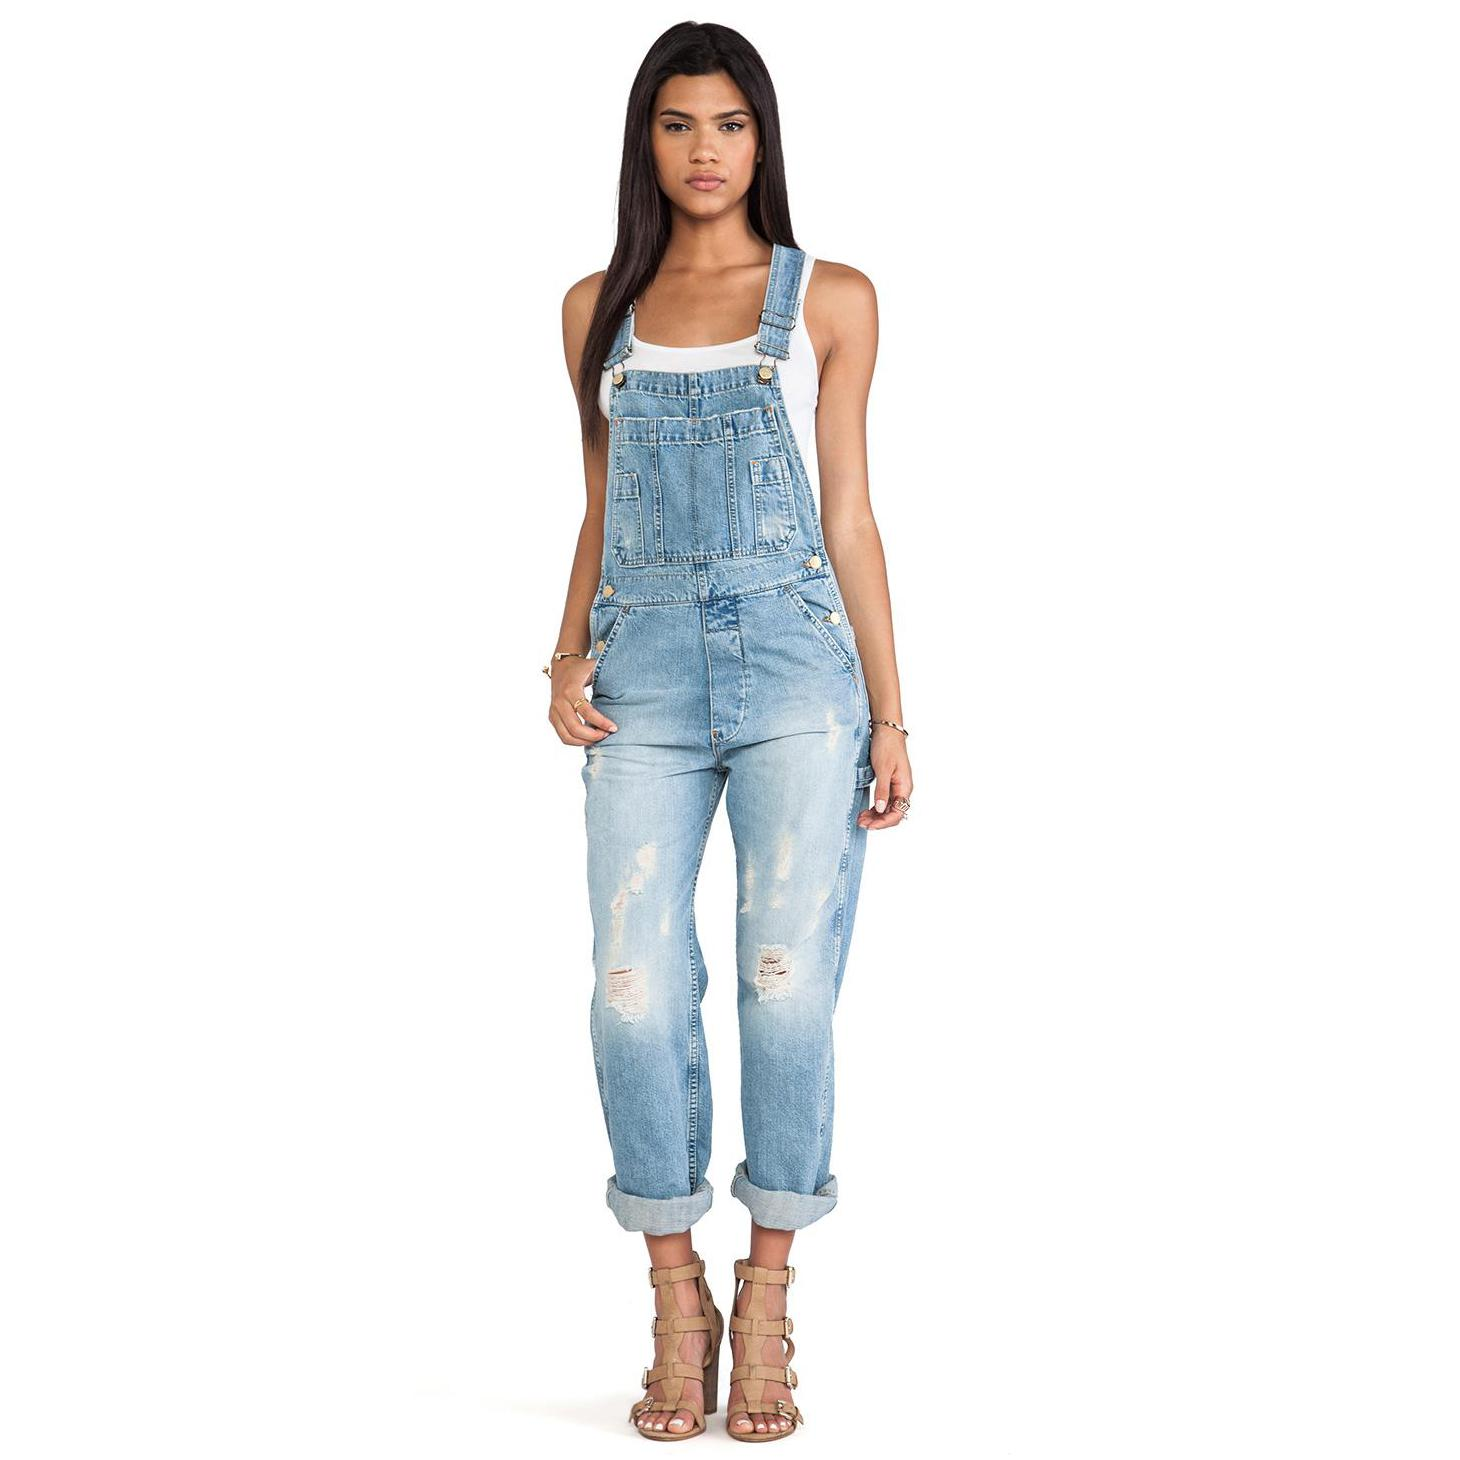 Trend: Overalls | The Fashion Foot